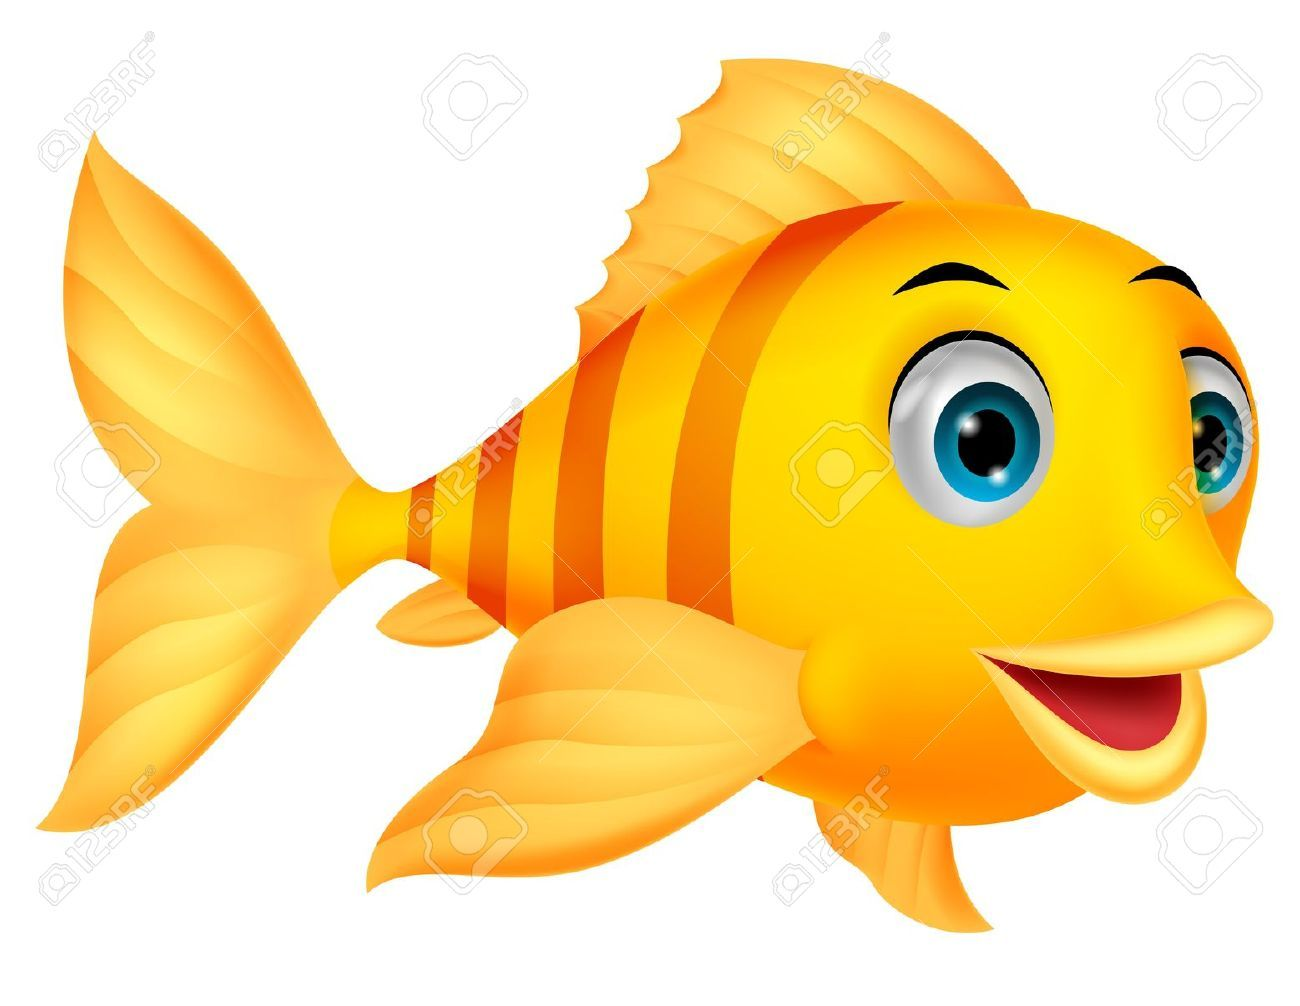 Winking fish clipart vector library download Cute fish fish and cartoon on clip art | beautiful fishys ... vector library download